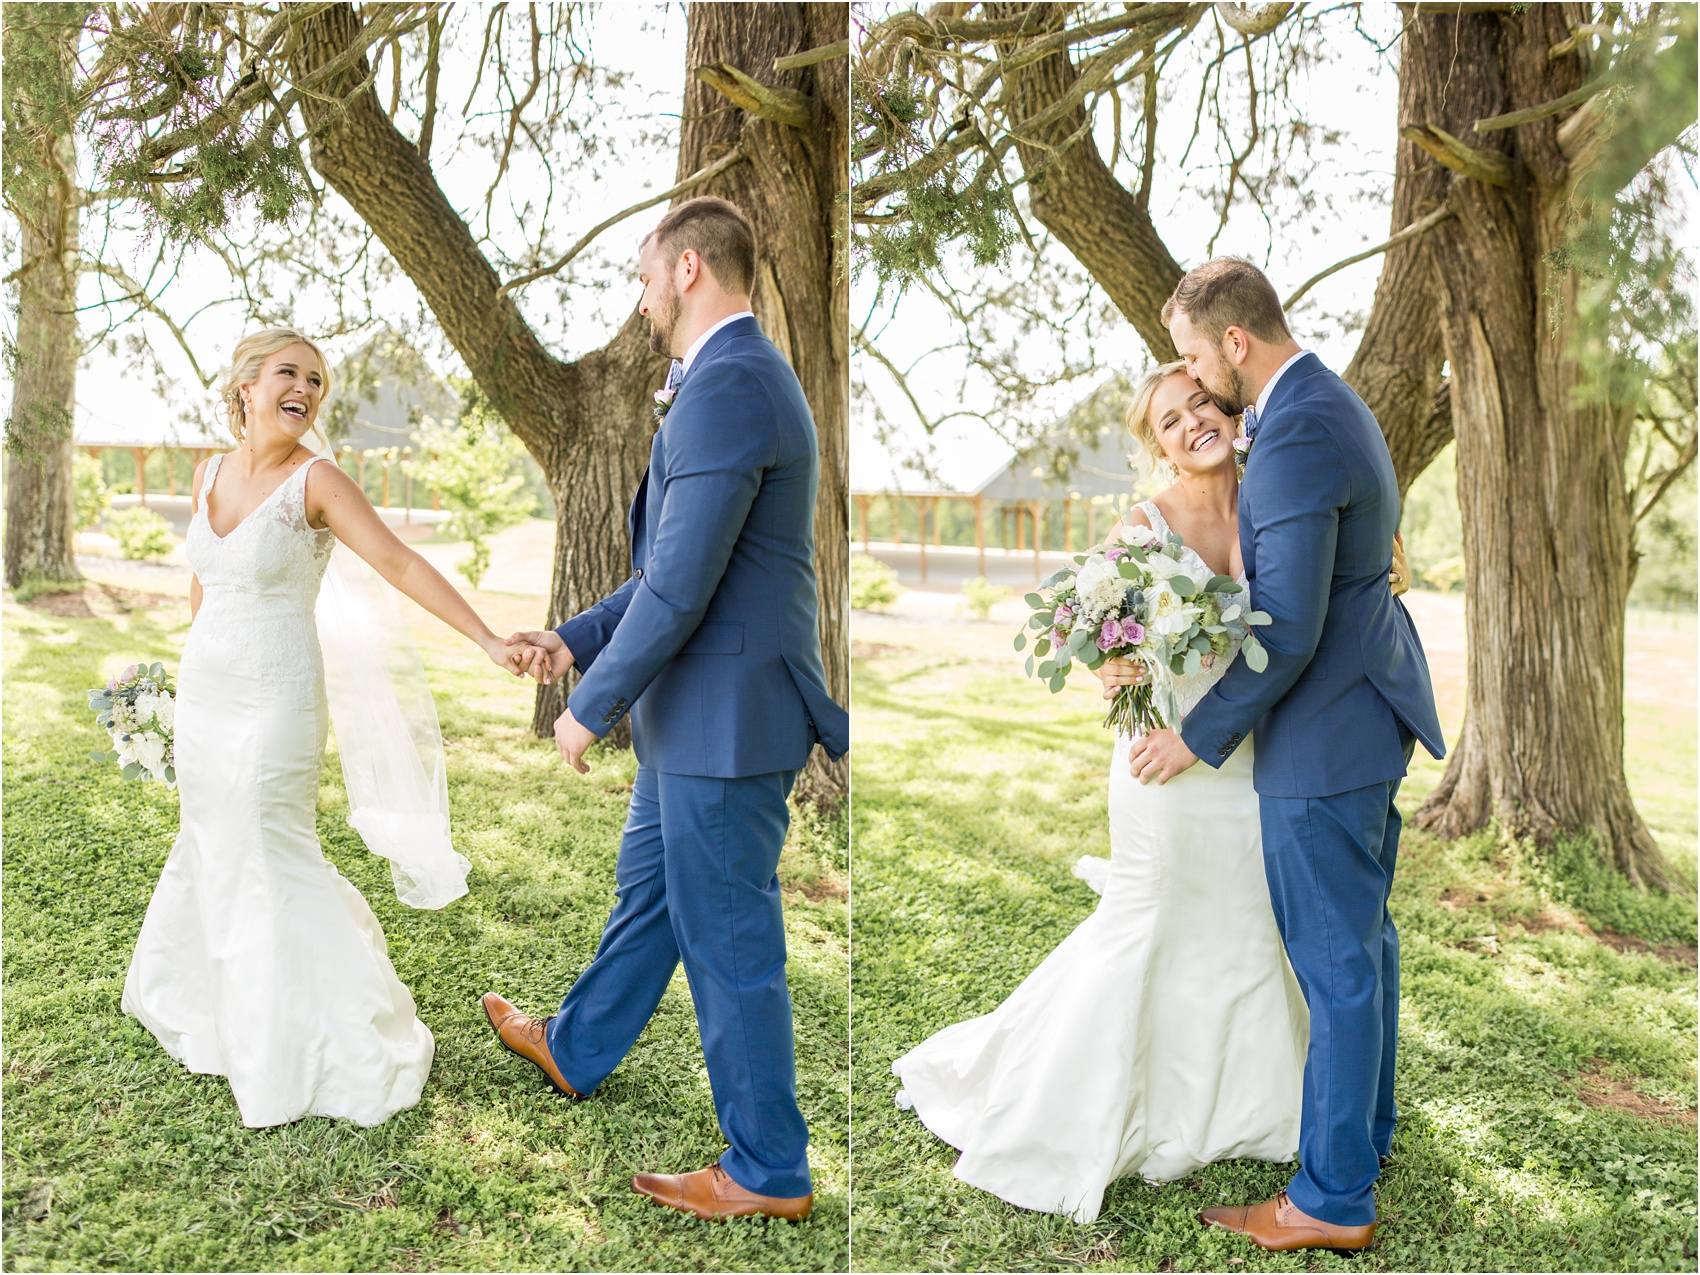 Bleckley Wedding- Sneak Peek-35.jpg